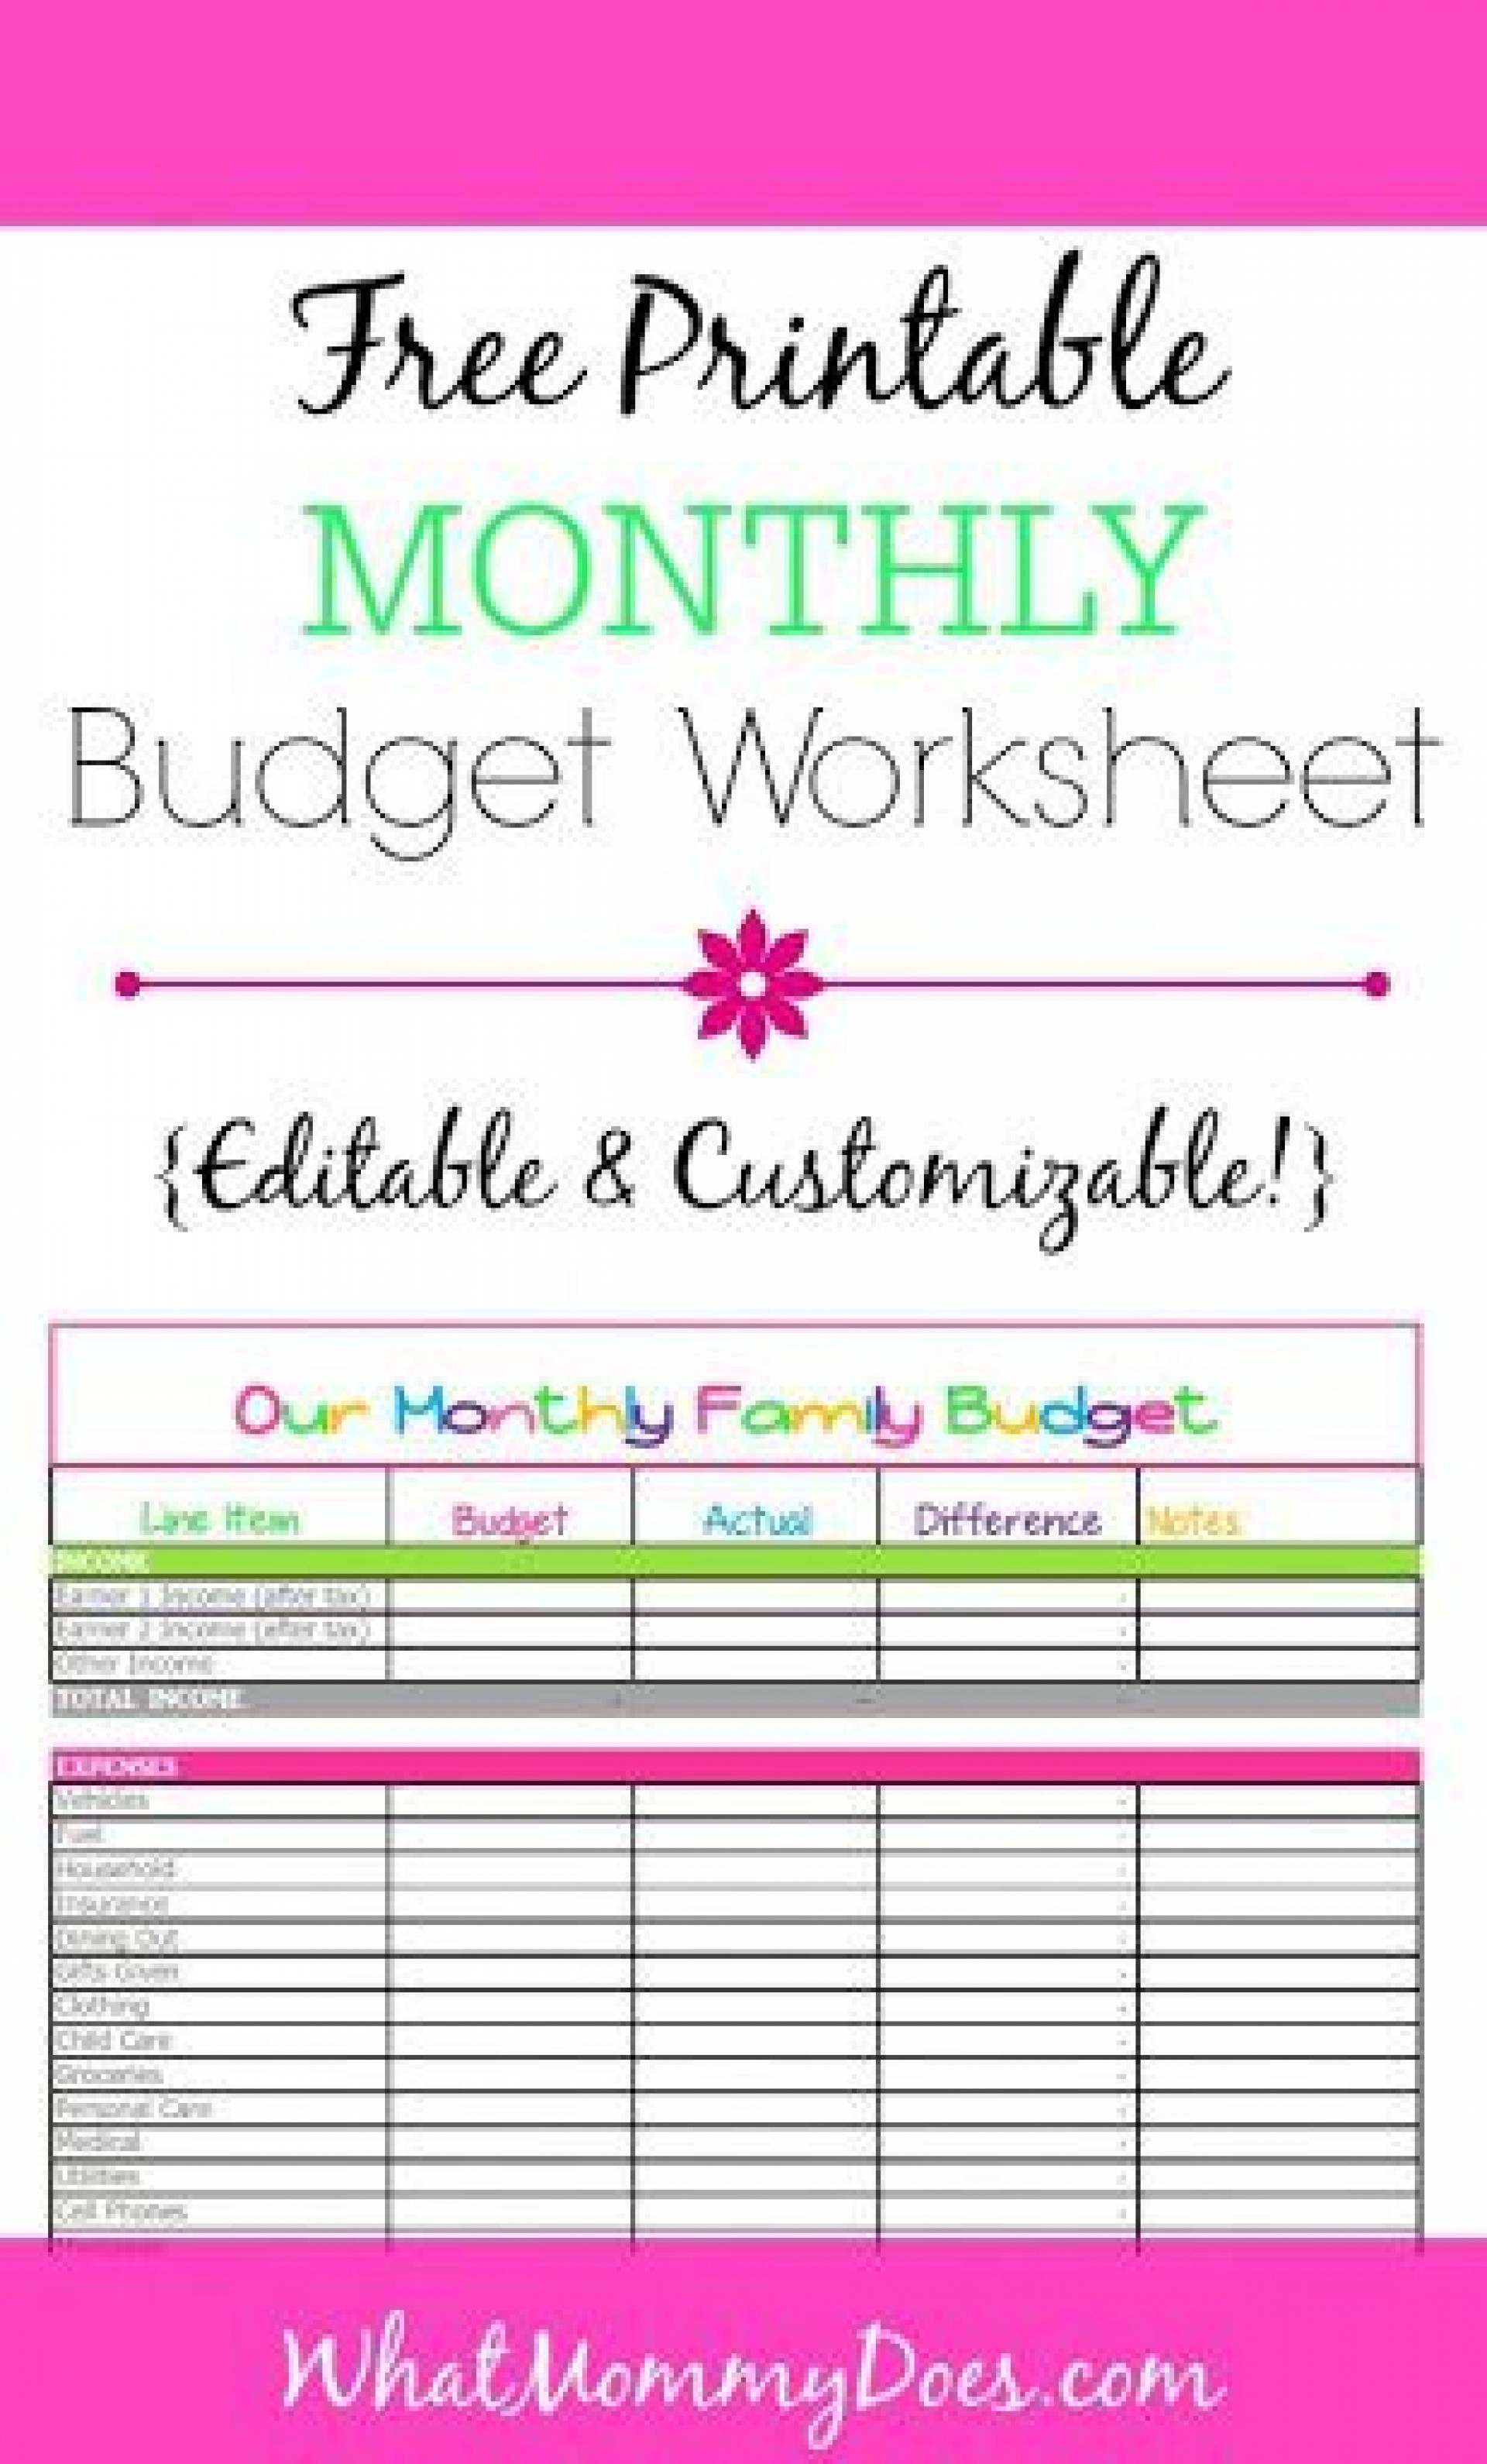 009 Impressive Free Printable Monthly Household Budget Template Picture  Expense1920